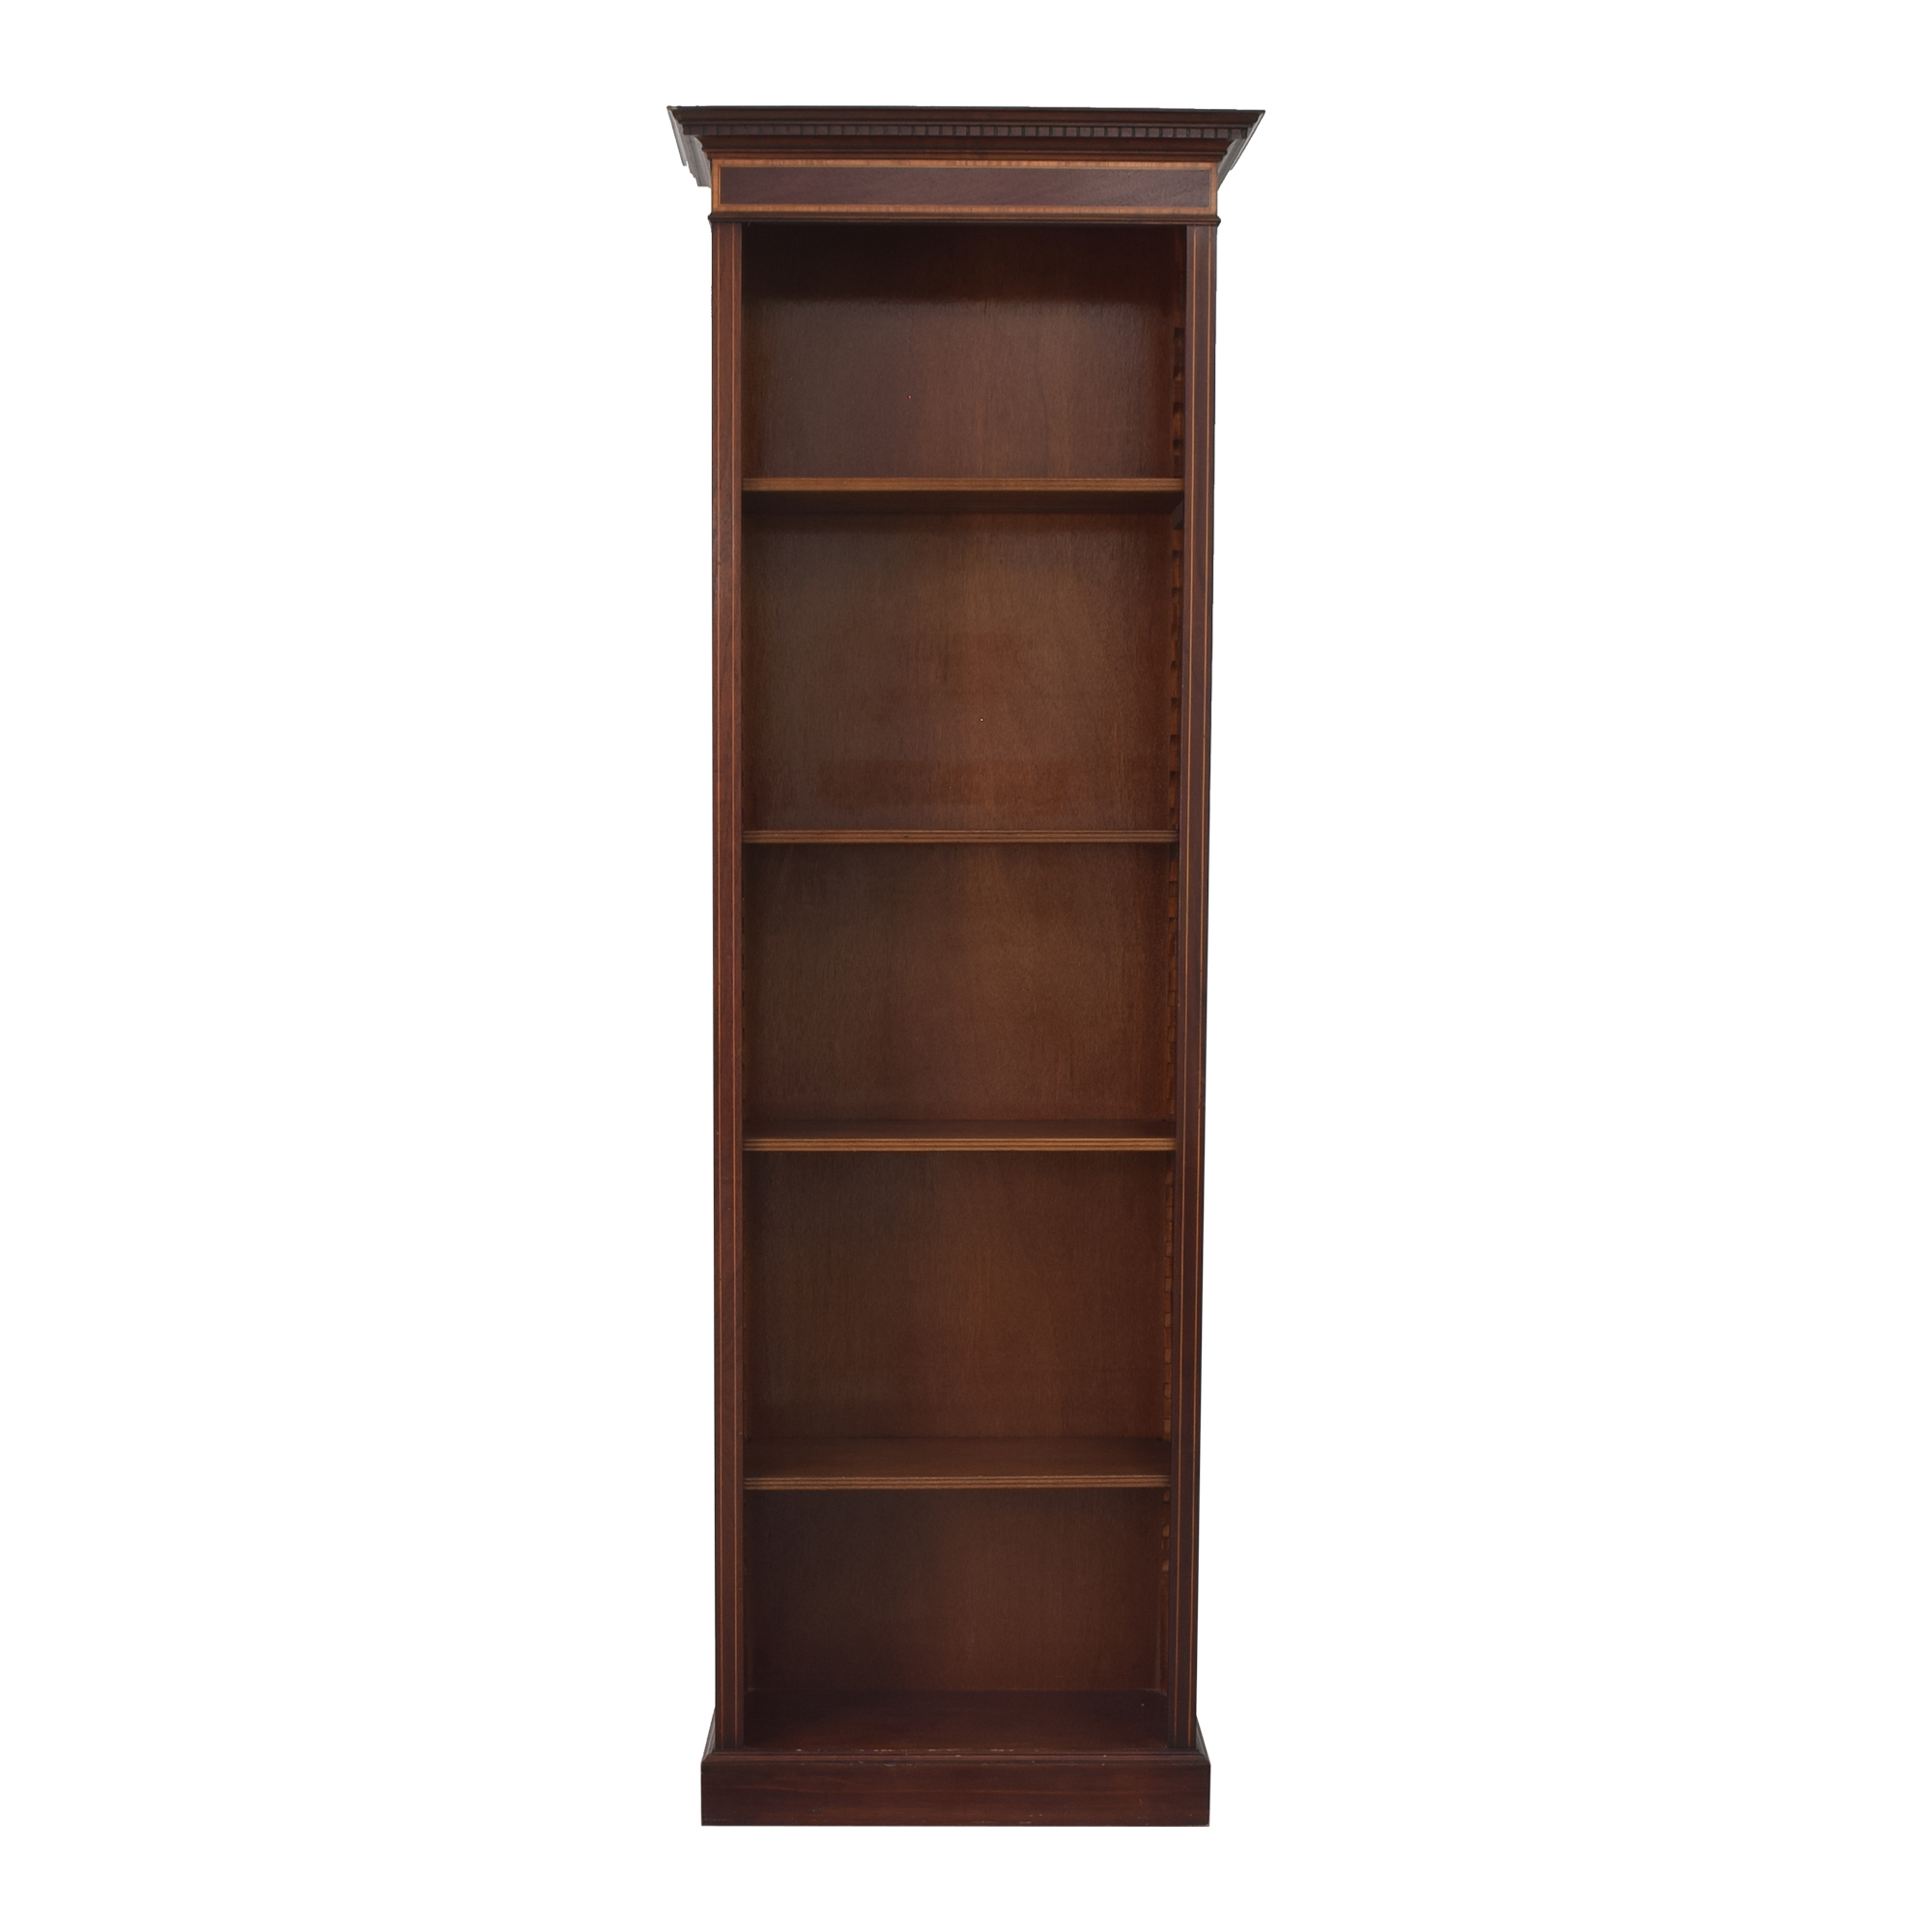 Empire-Style Antique Bookcase with Inlay Detail / Storage